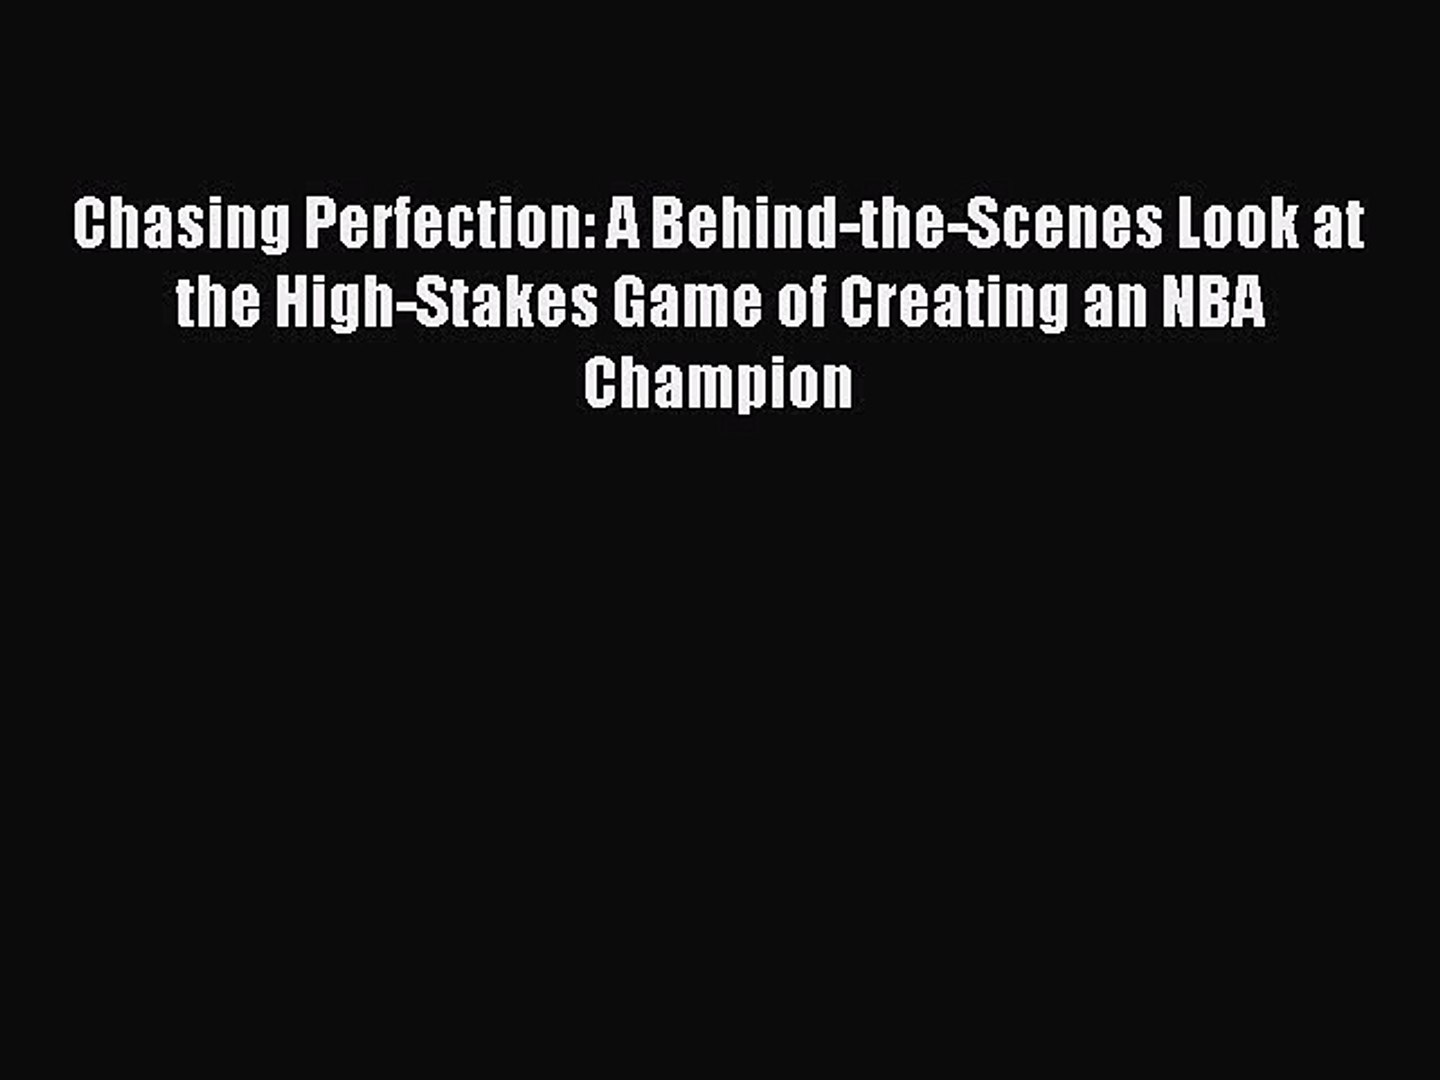 Read Chasing Perfection: A Behind-the-Scenes Look at the High-Stakes Game of Creating an NBA